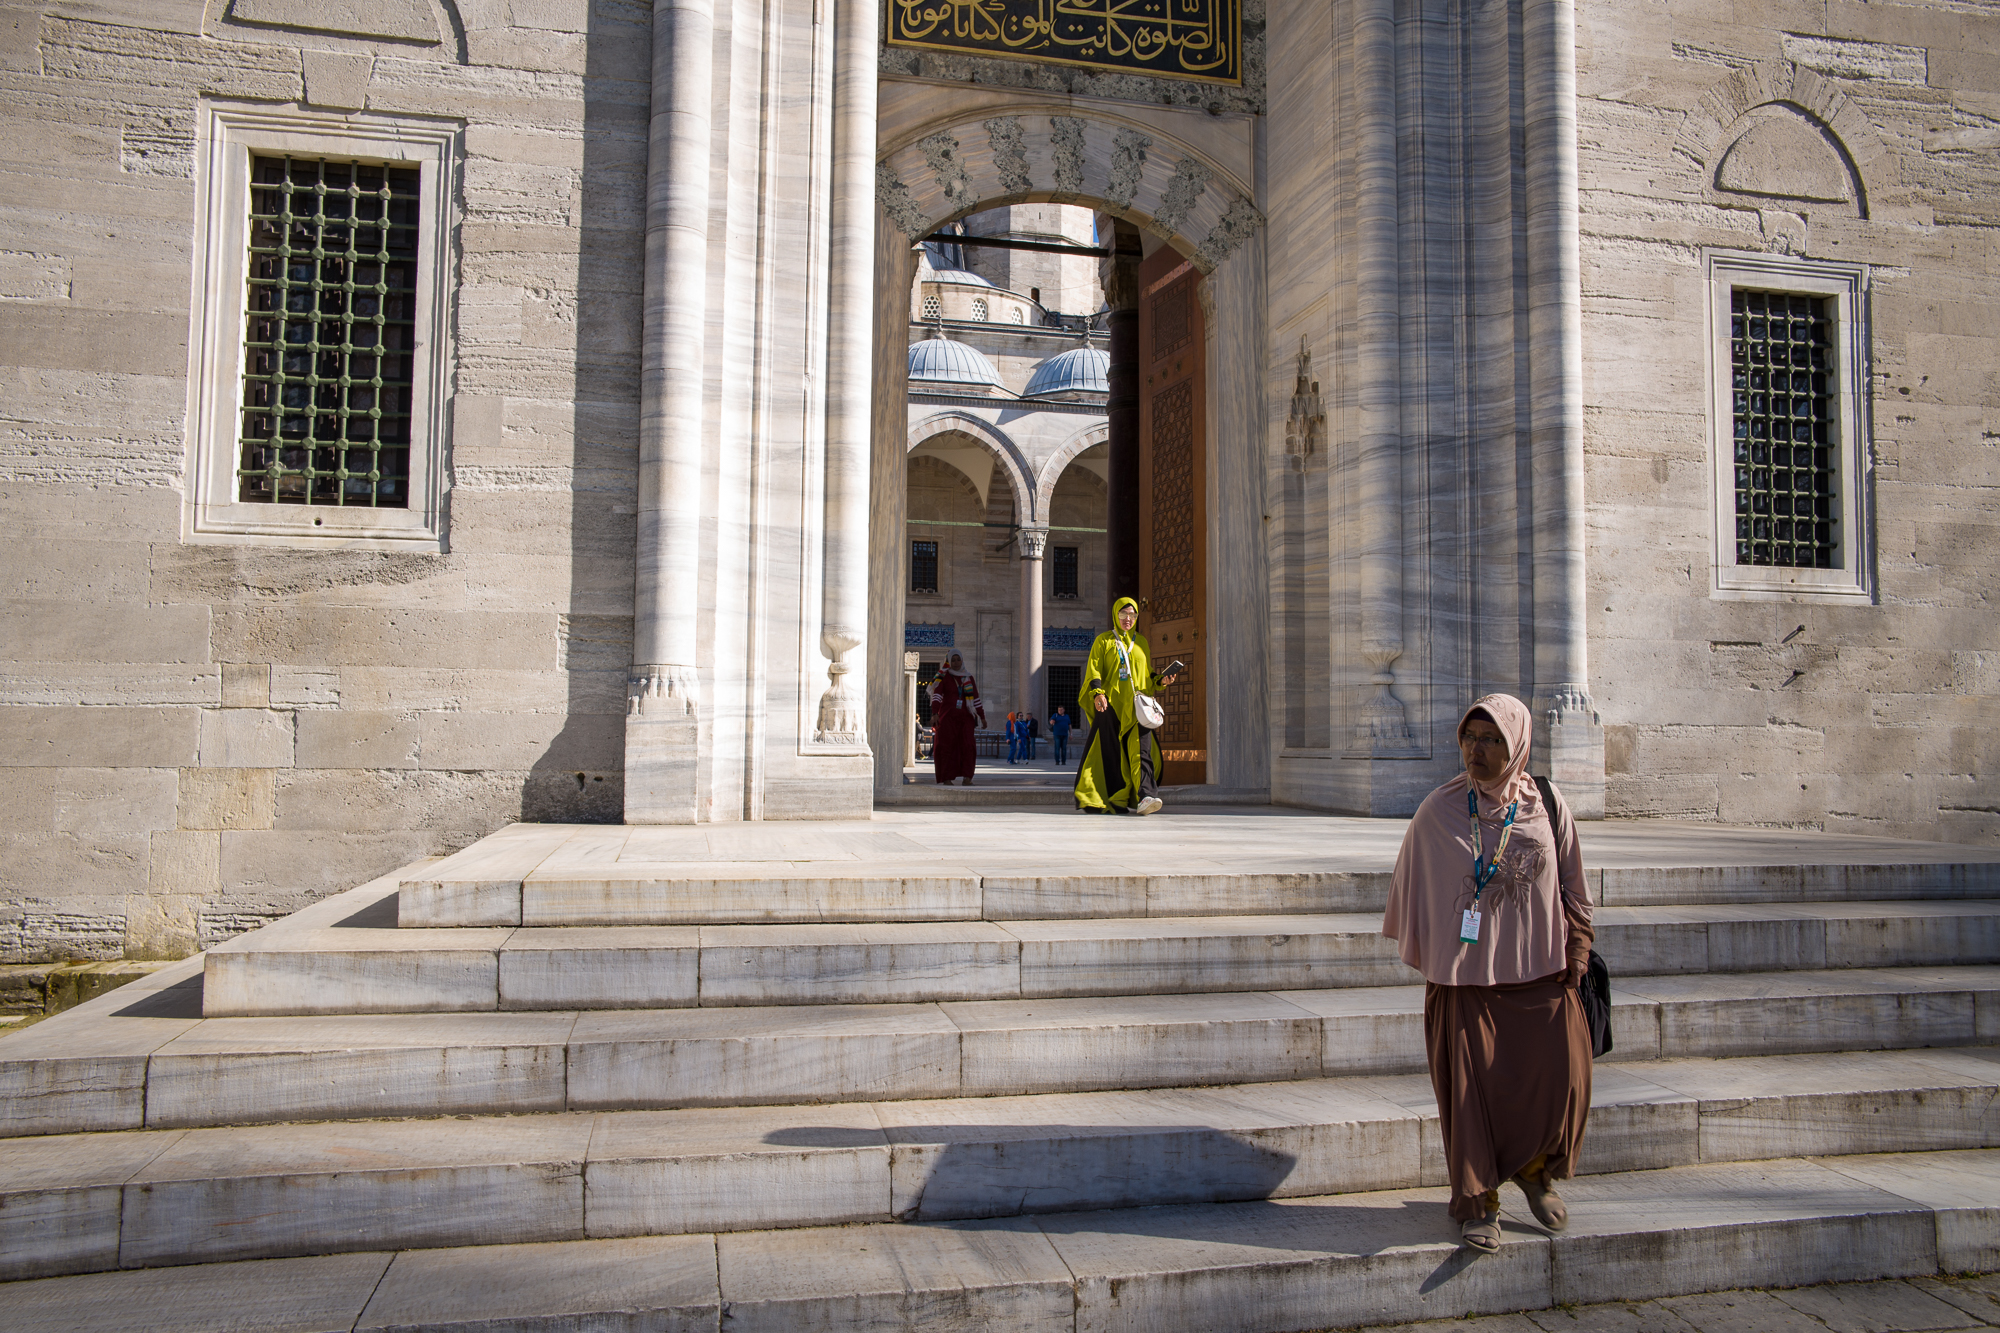 On the steps of Suleymaniye Mosque